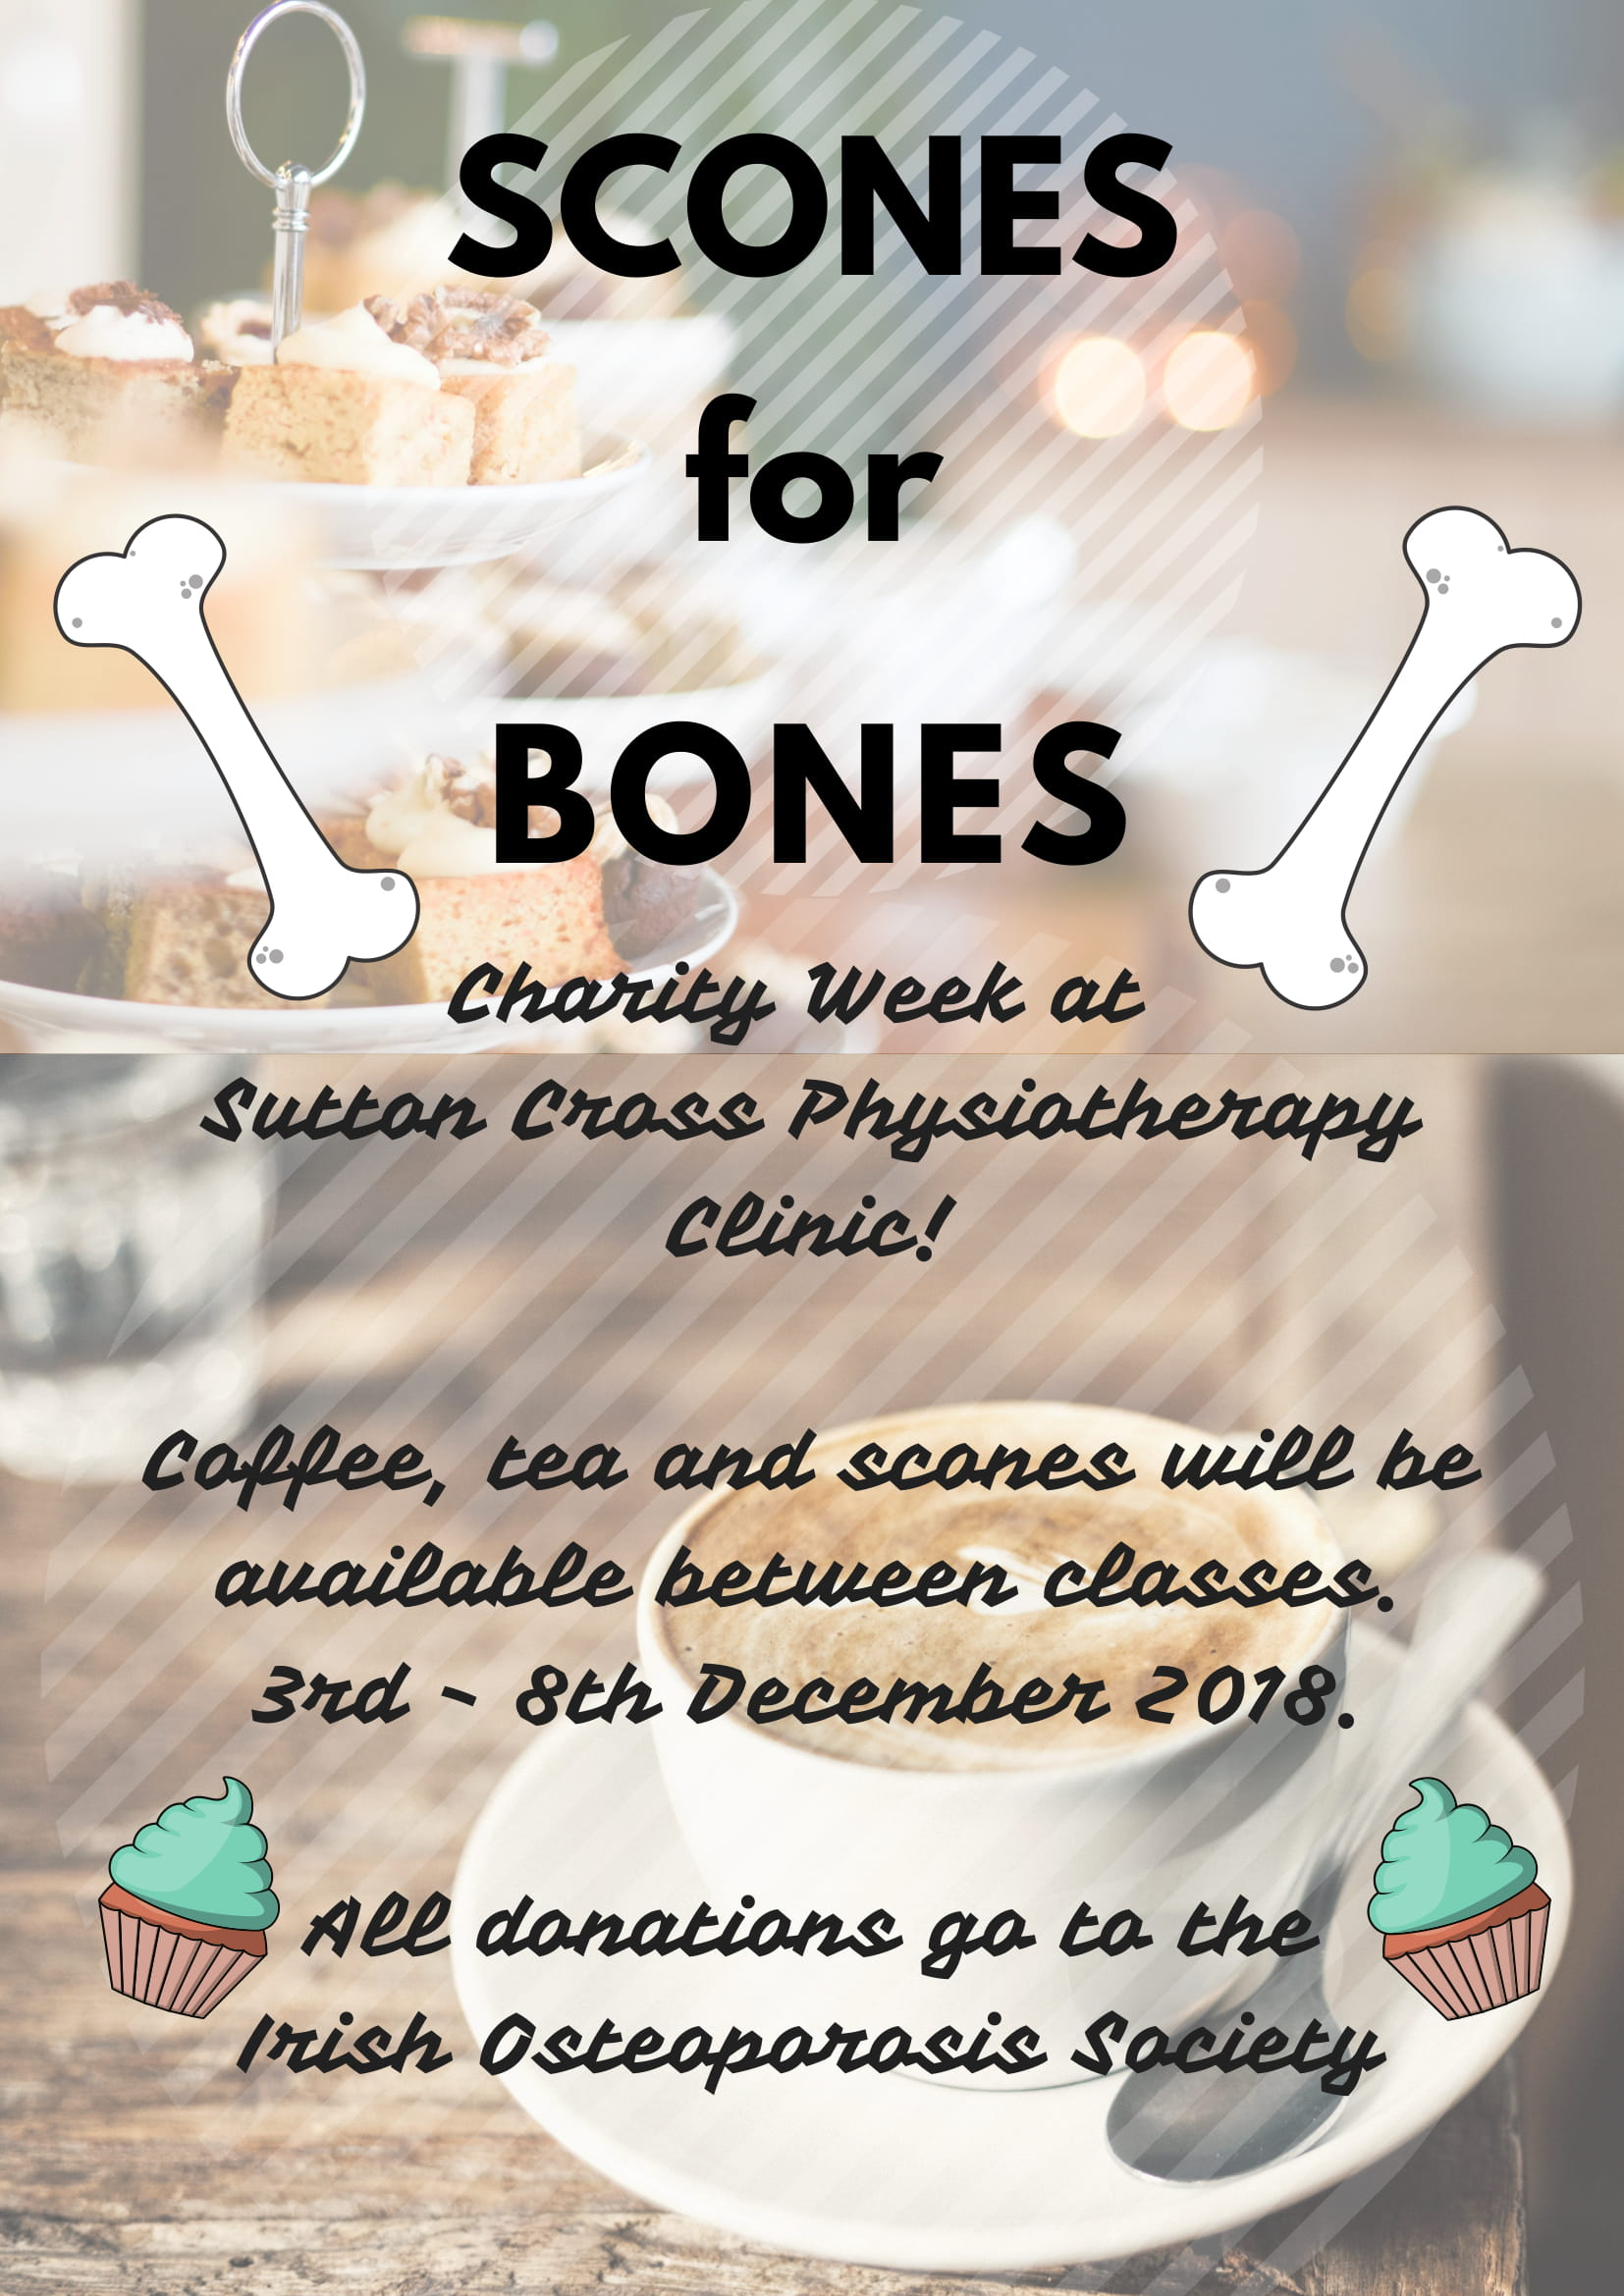 Scones for Bones charity week for the IOS